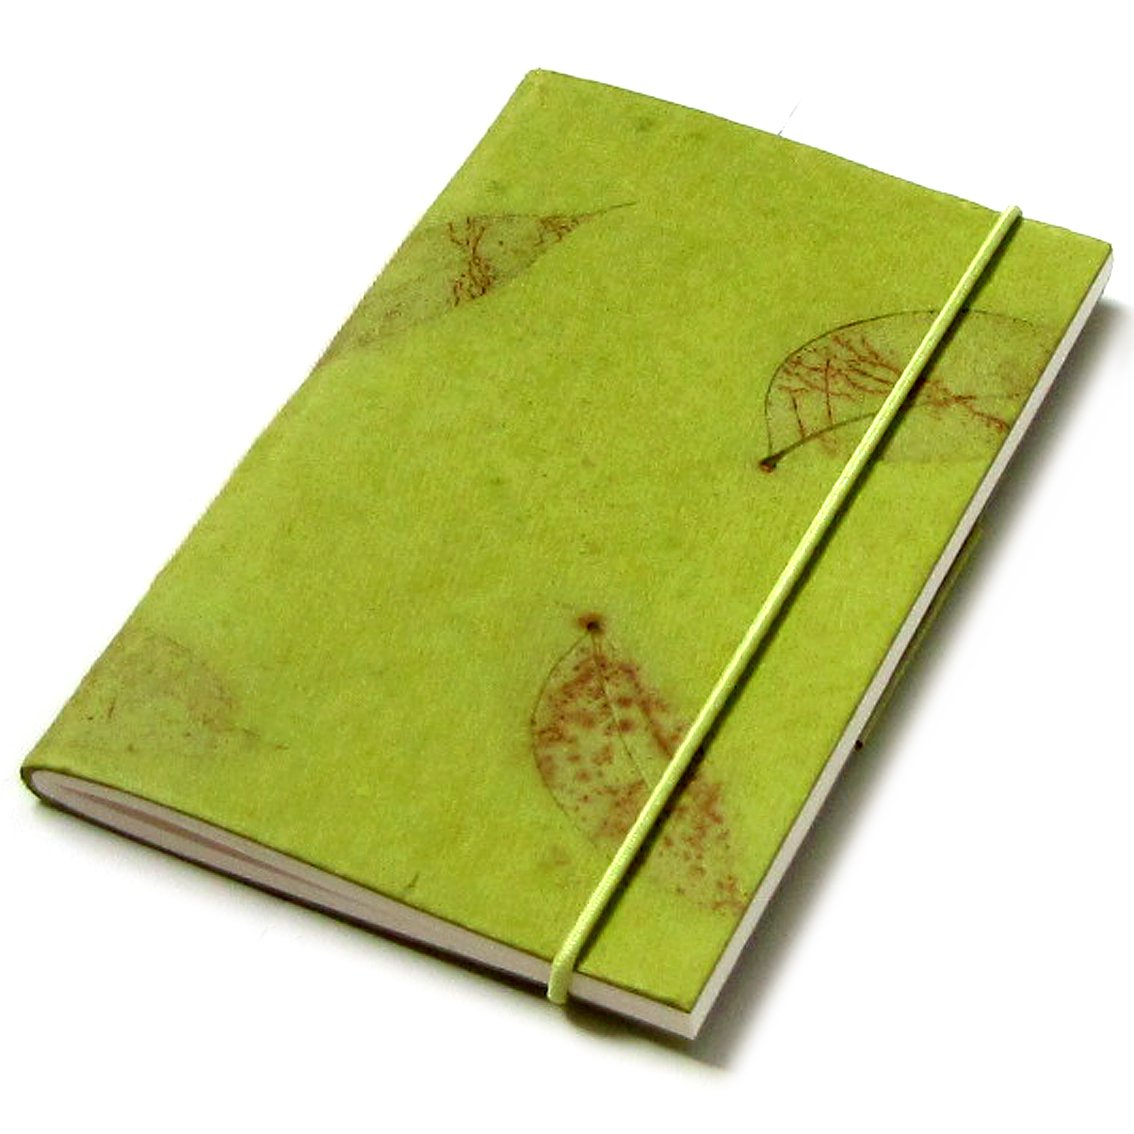 Pocket notebook blank journal 3x5 40pp olive ethical handmade paper craft note pad